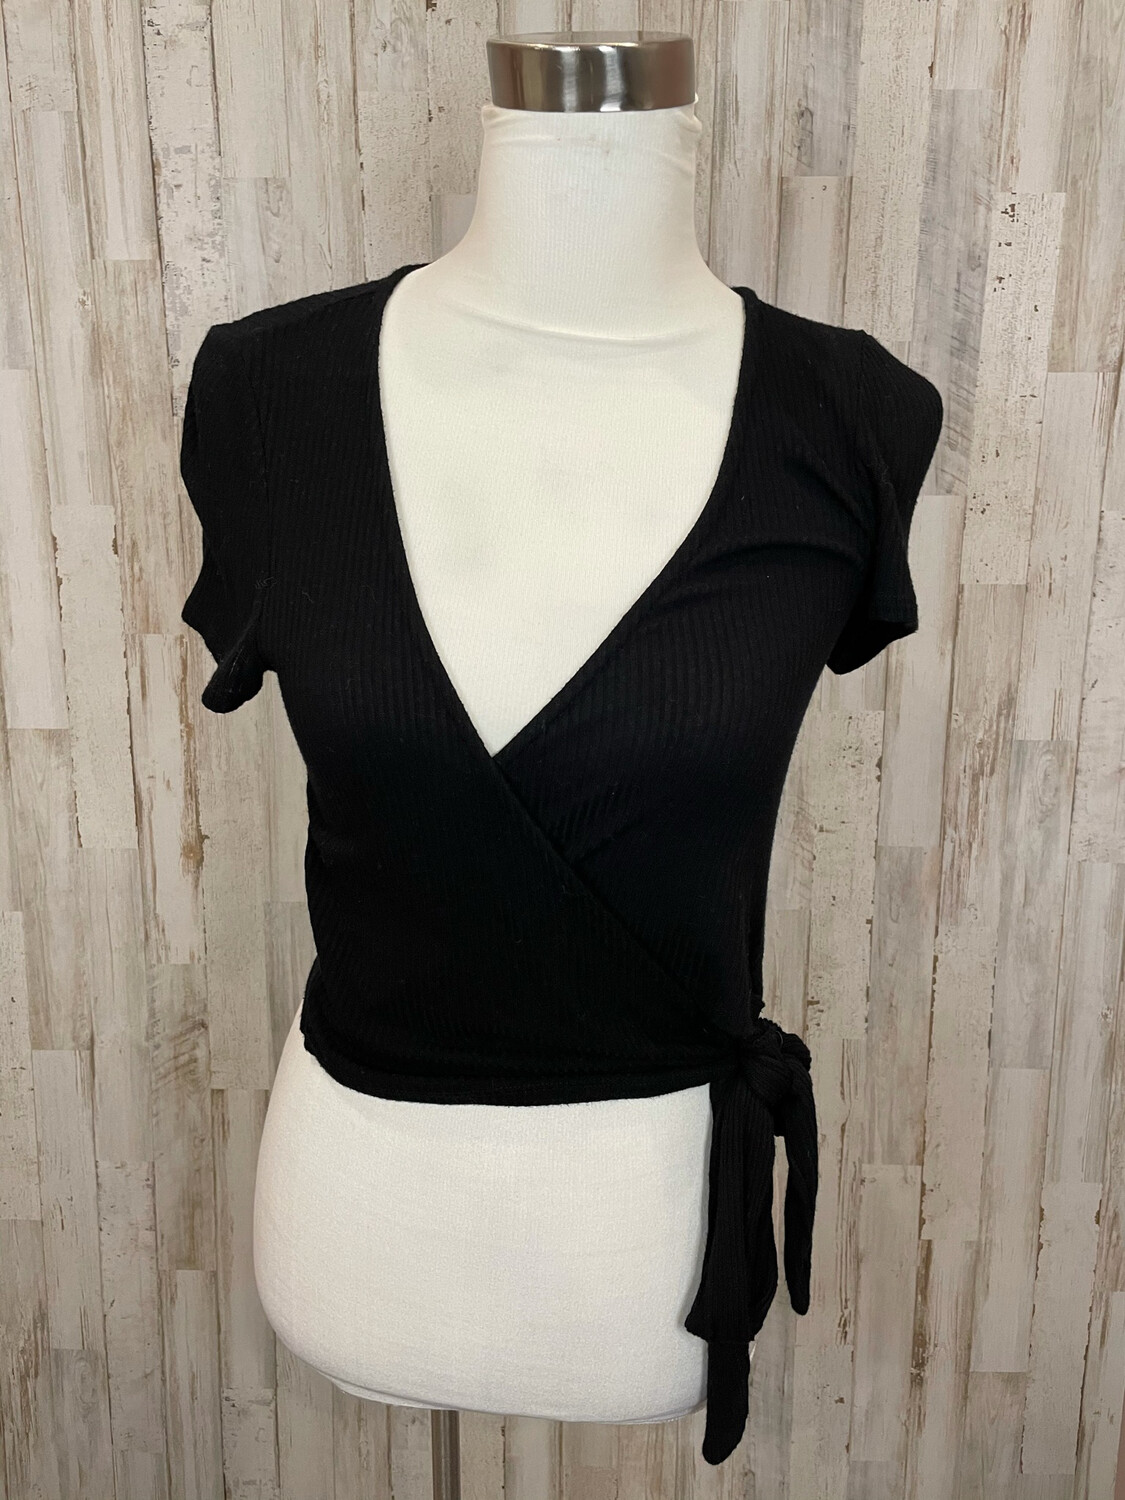 Project Social T Black Ribbed Wrap Top - M